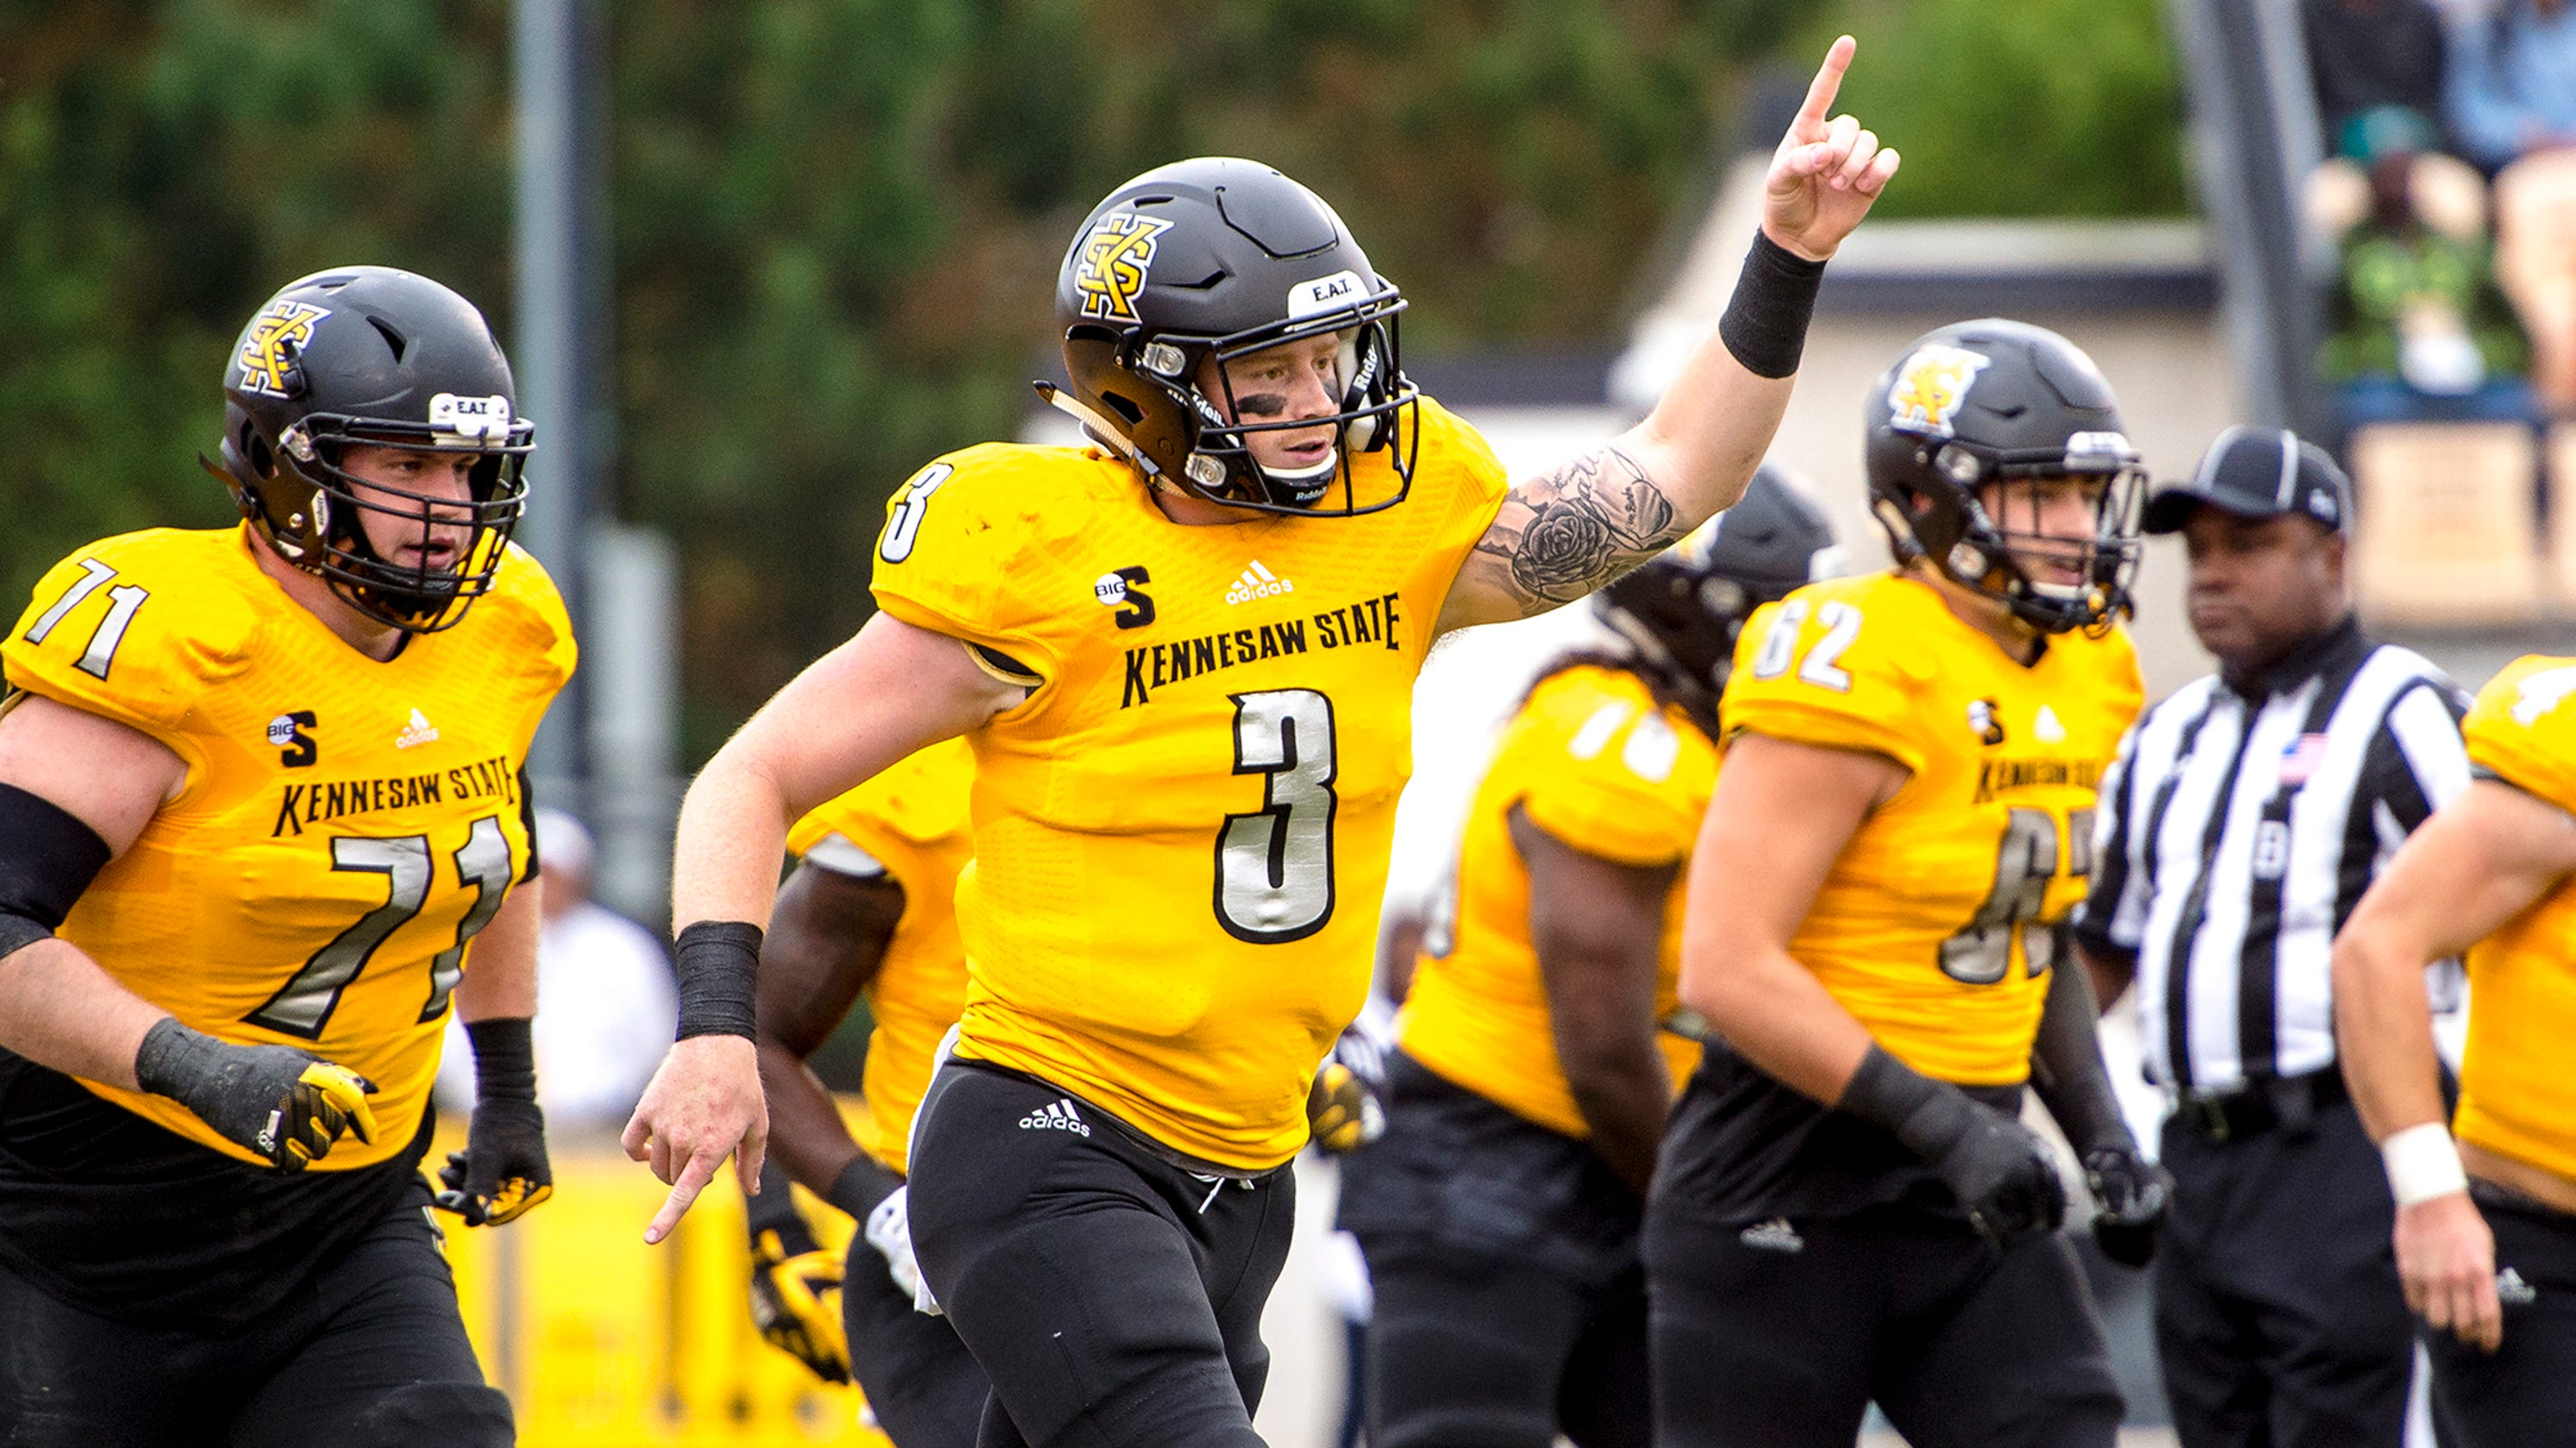 fcs playoffs: what to know about kennesaw state, sdsu's next opponent